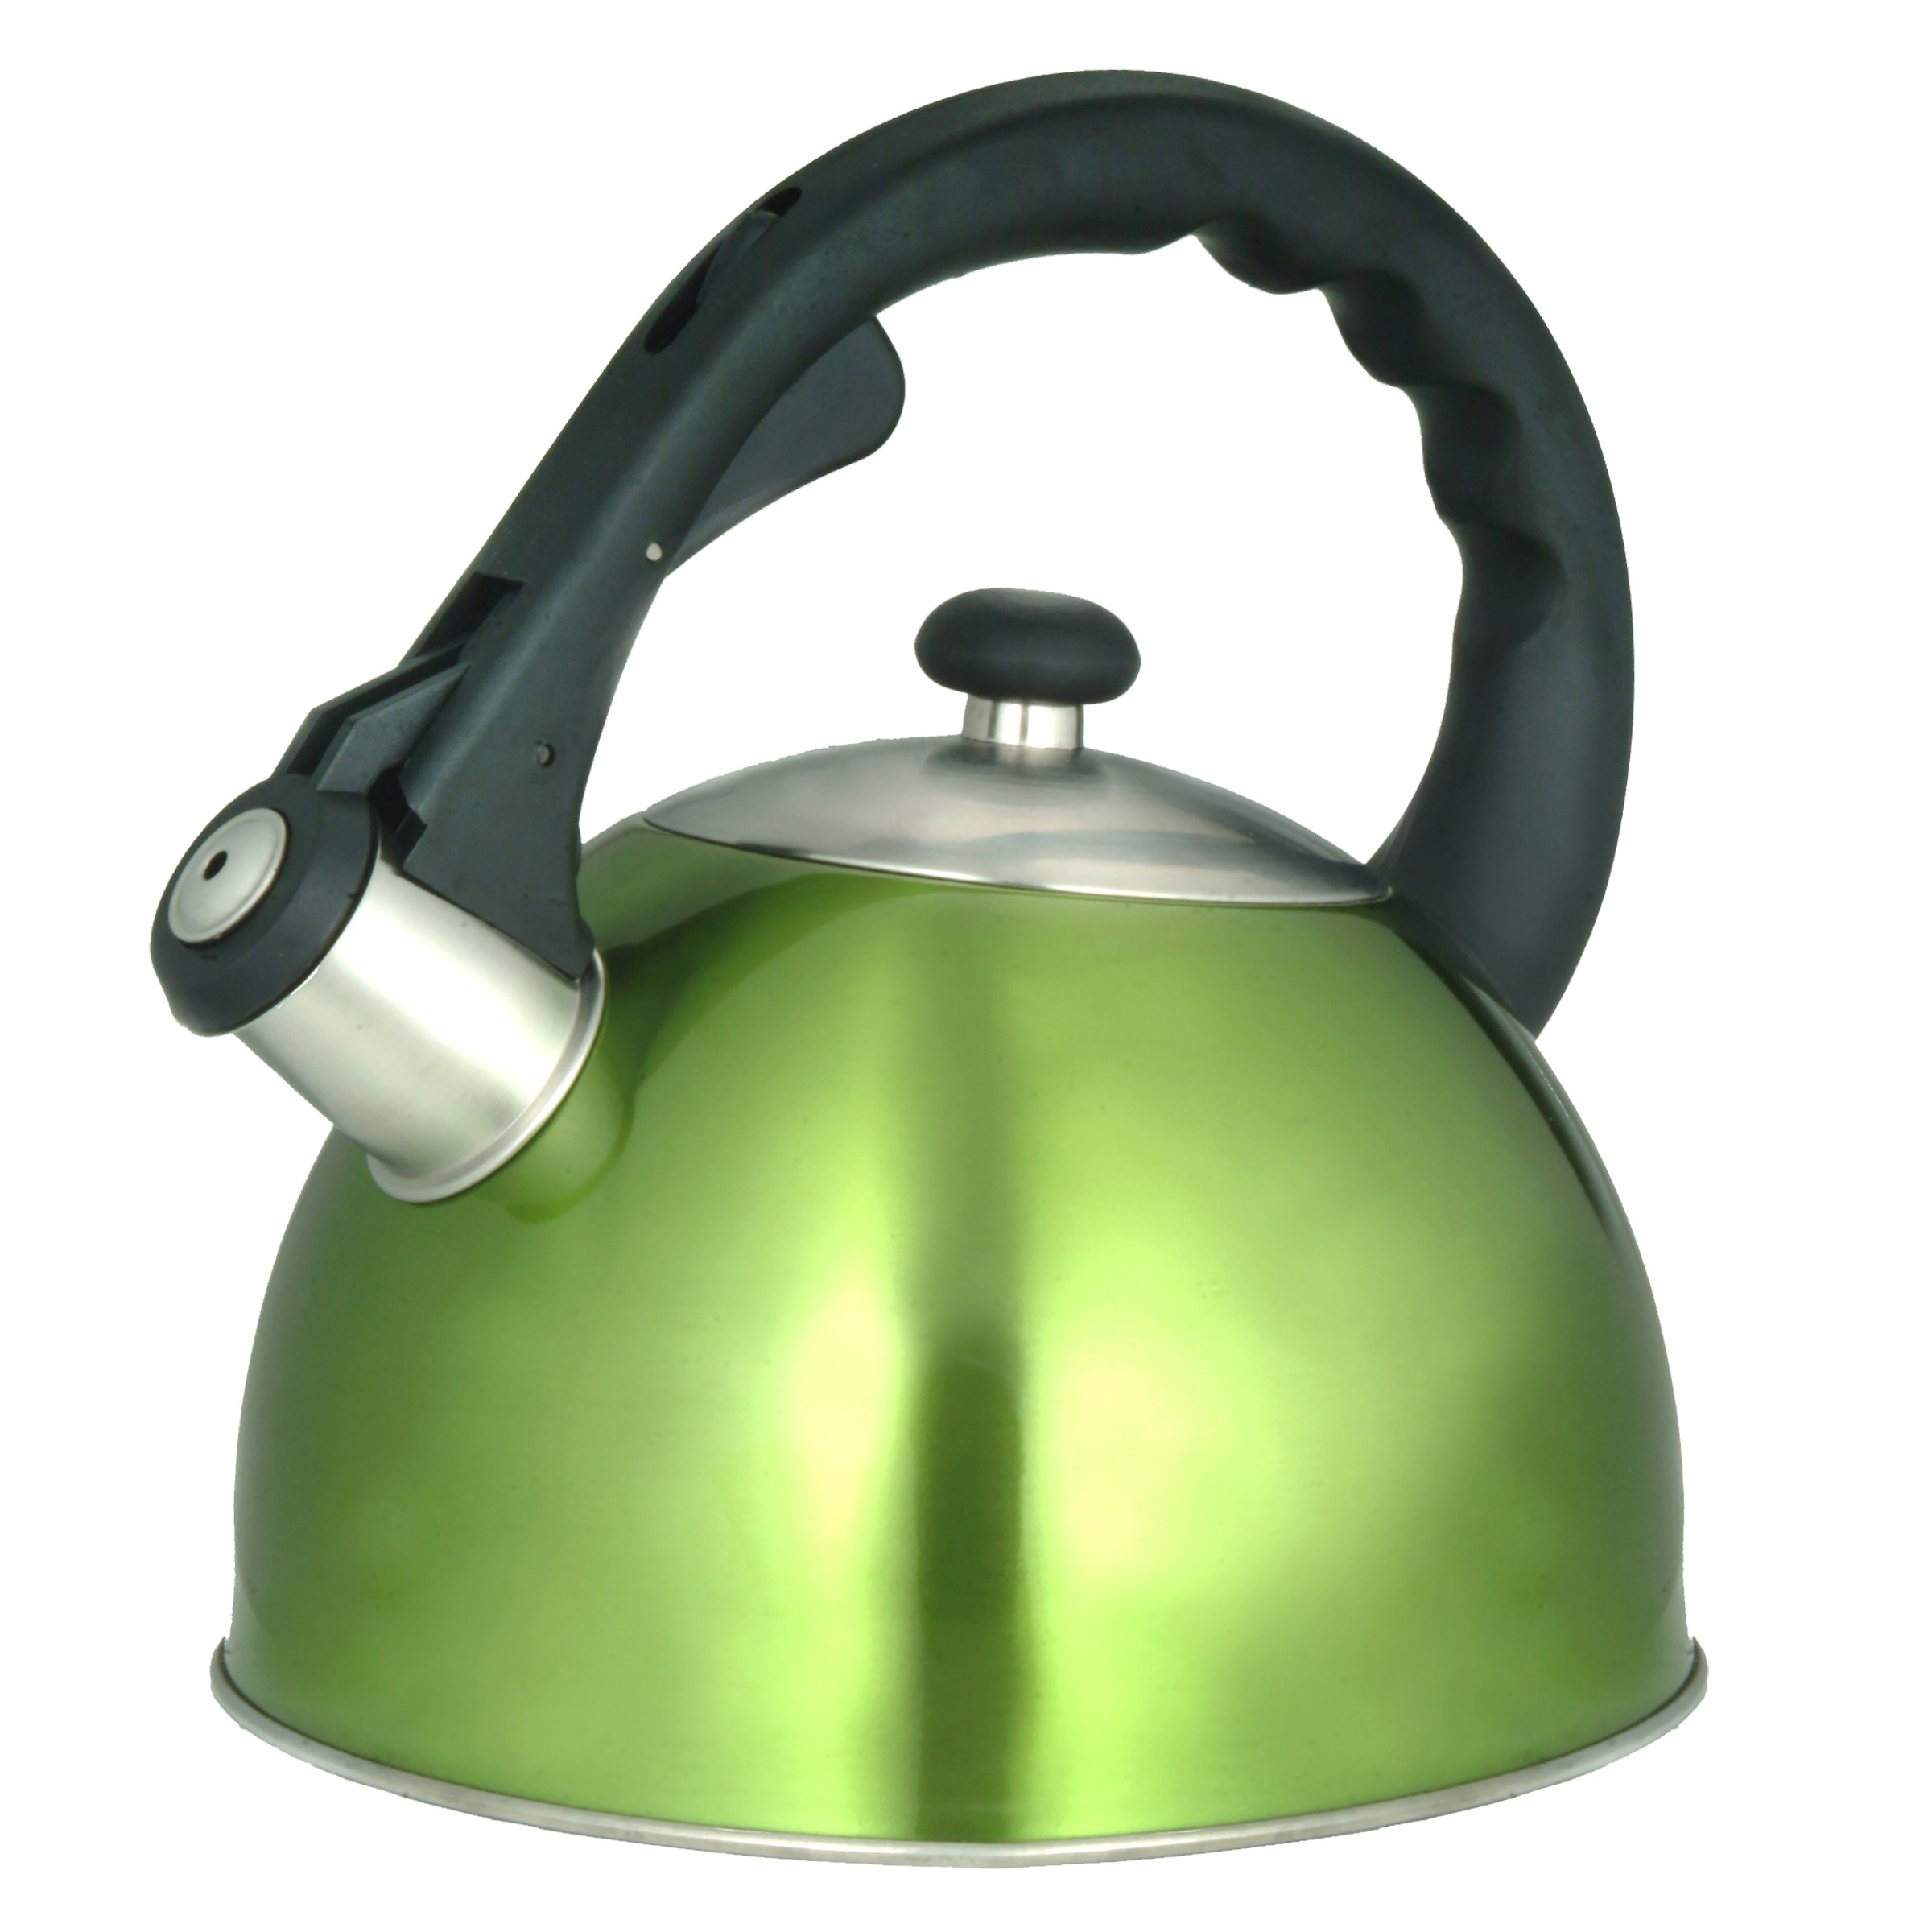 Creative Home Satin Splendor High Quality Stainless Steel 2.8-Quart Whistling Tea Kettle, Chartreuse